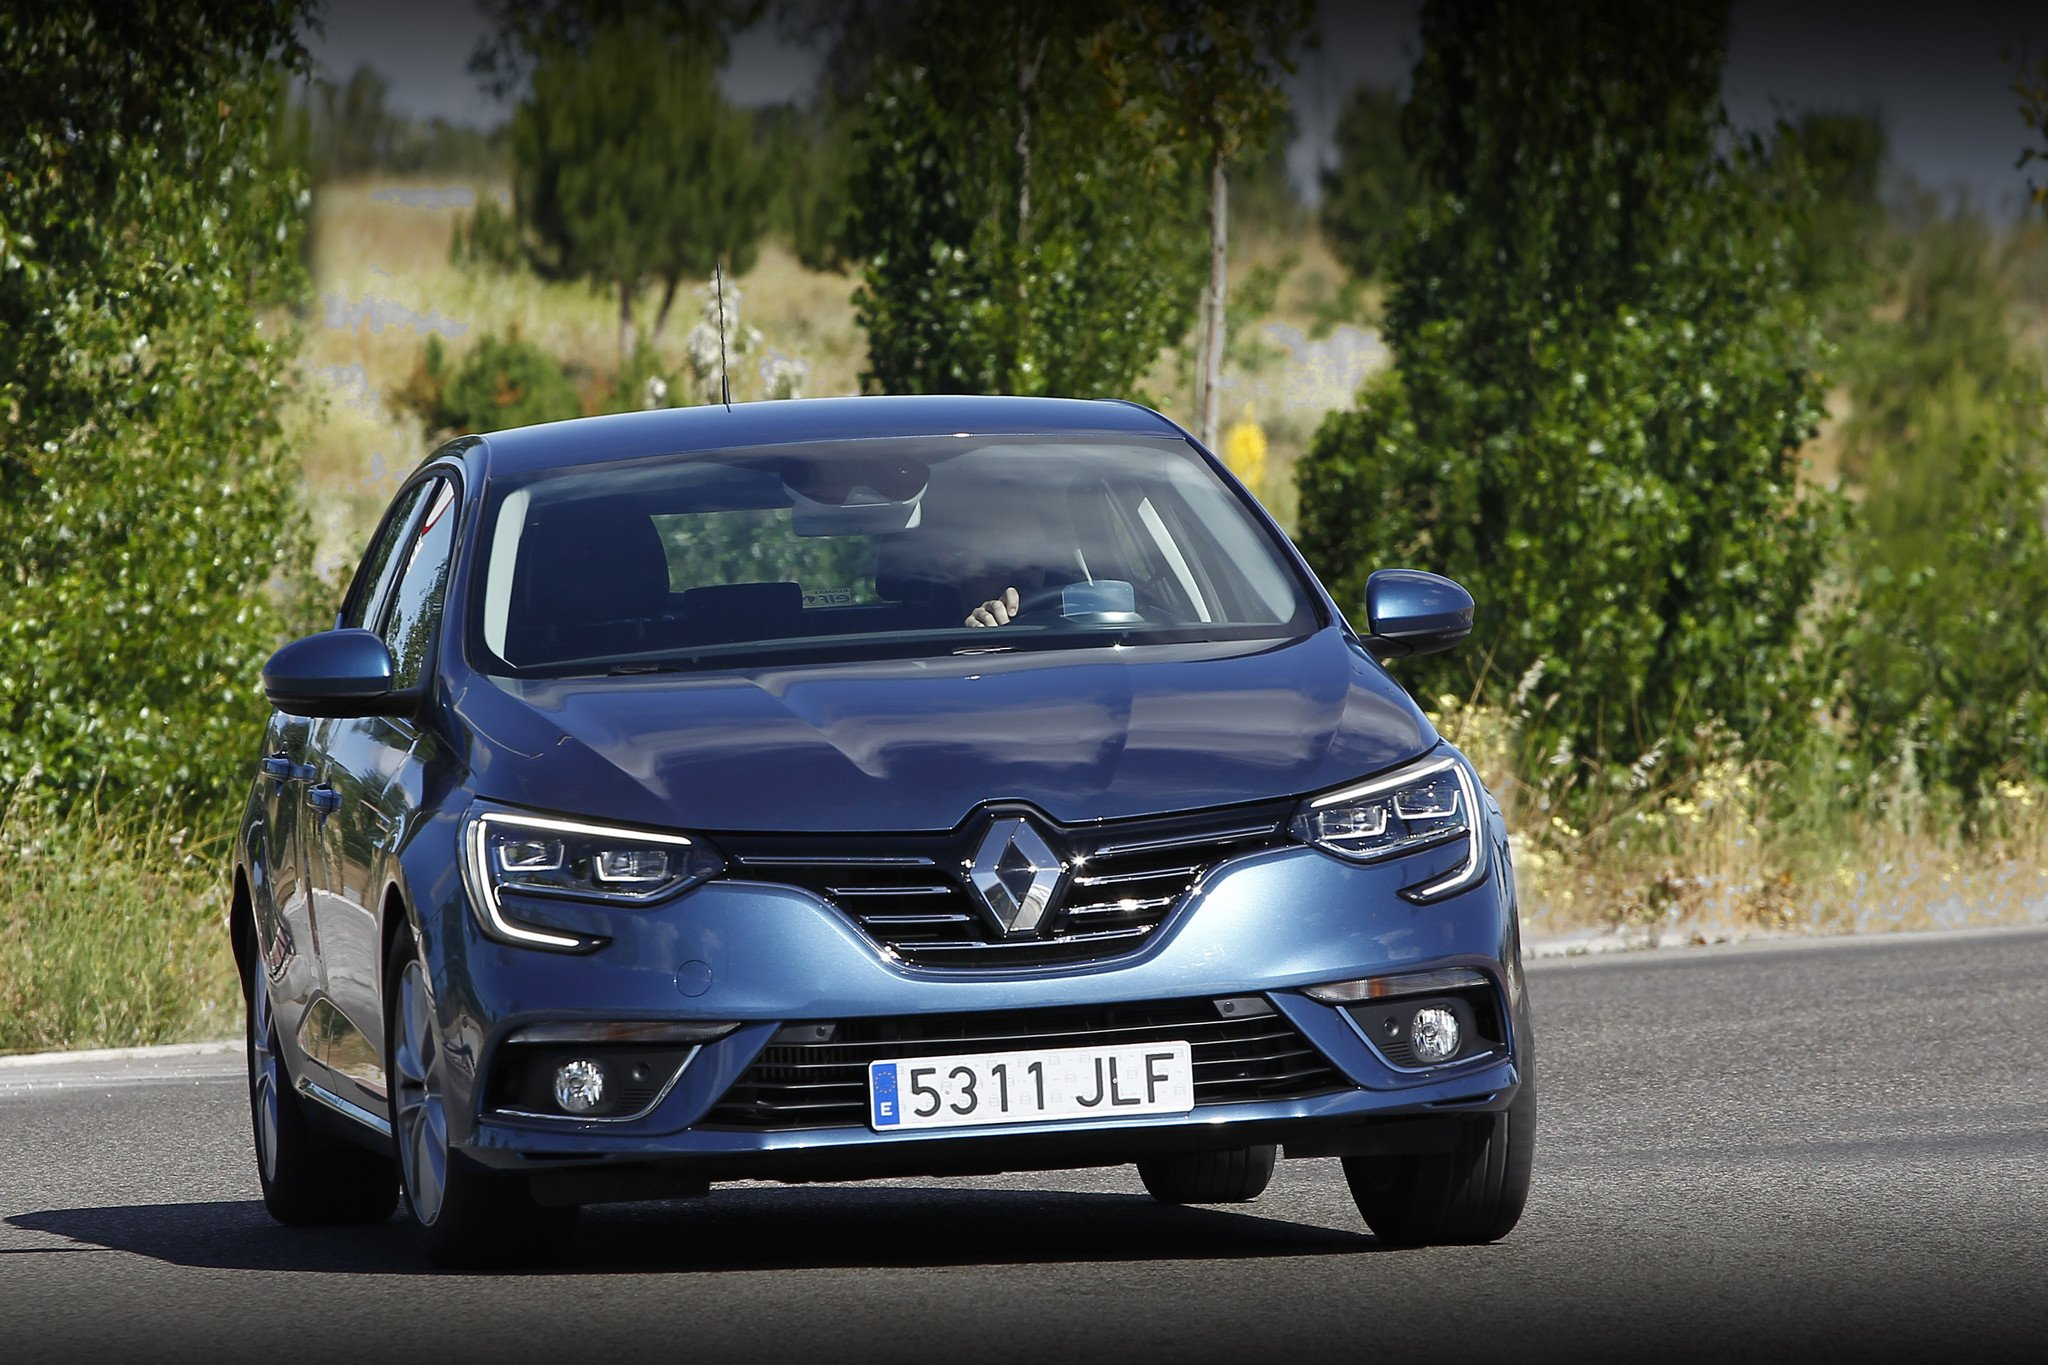 prueba nuevo renault megane tce 130 de gasolina. Black Bedroom Furniture Sets. Home Design Ideas